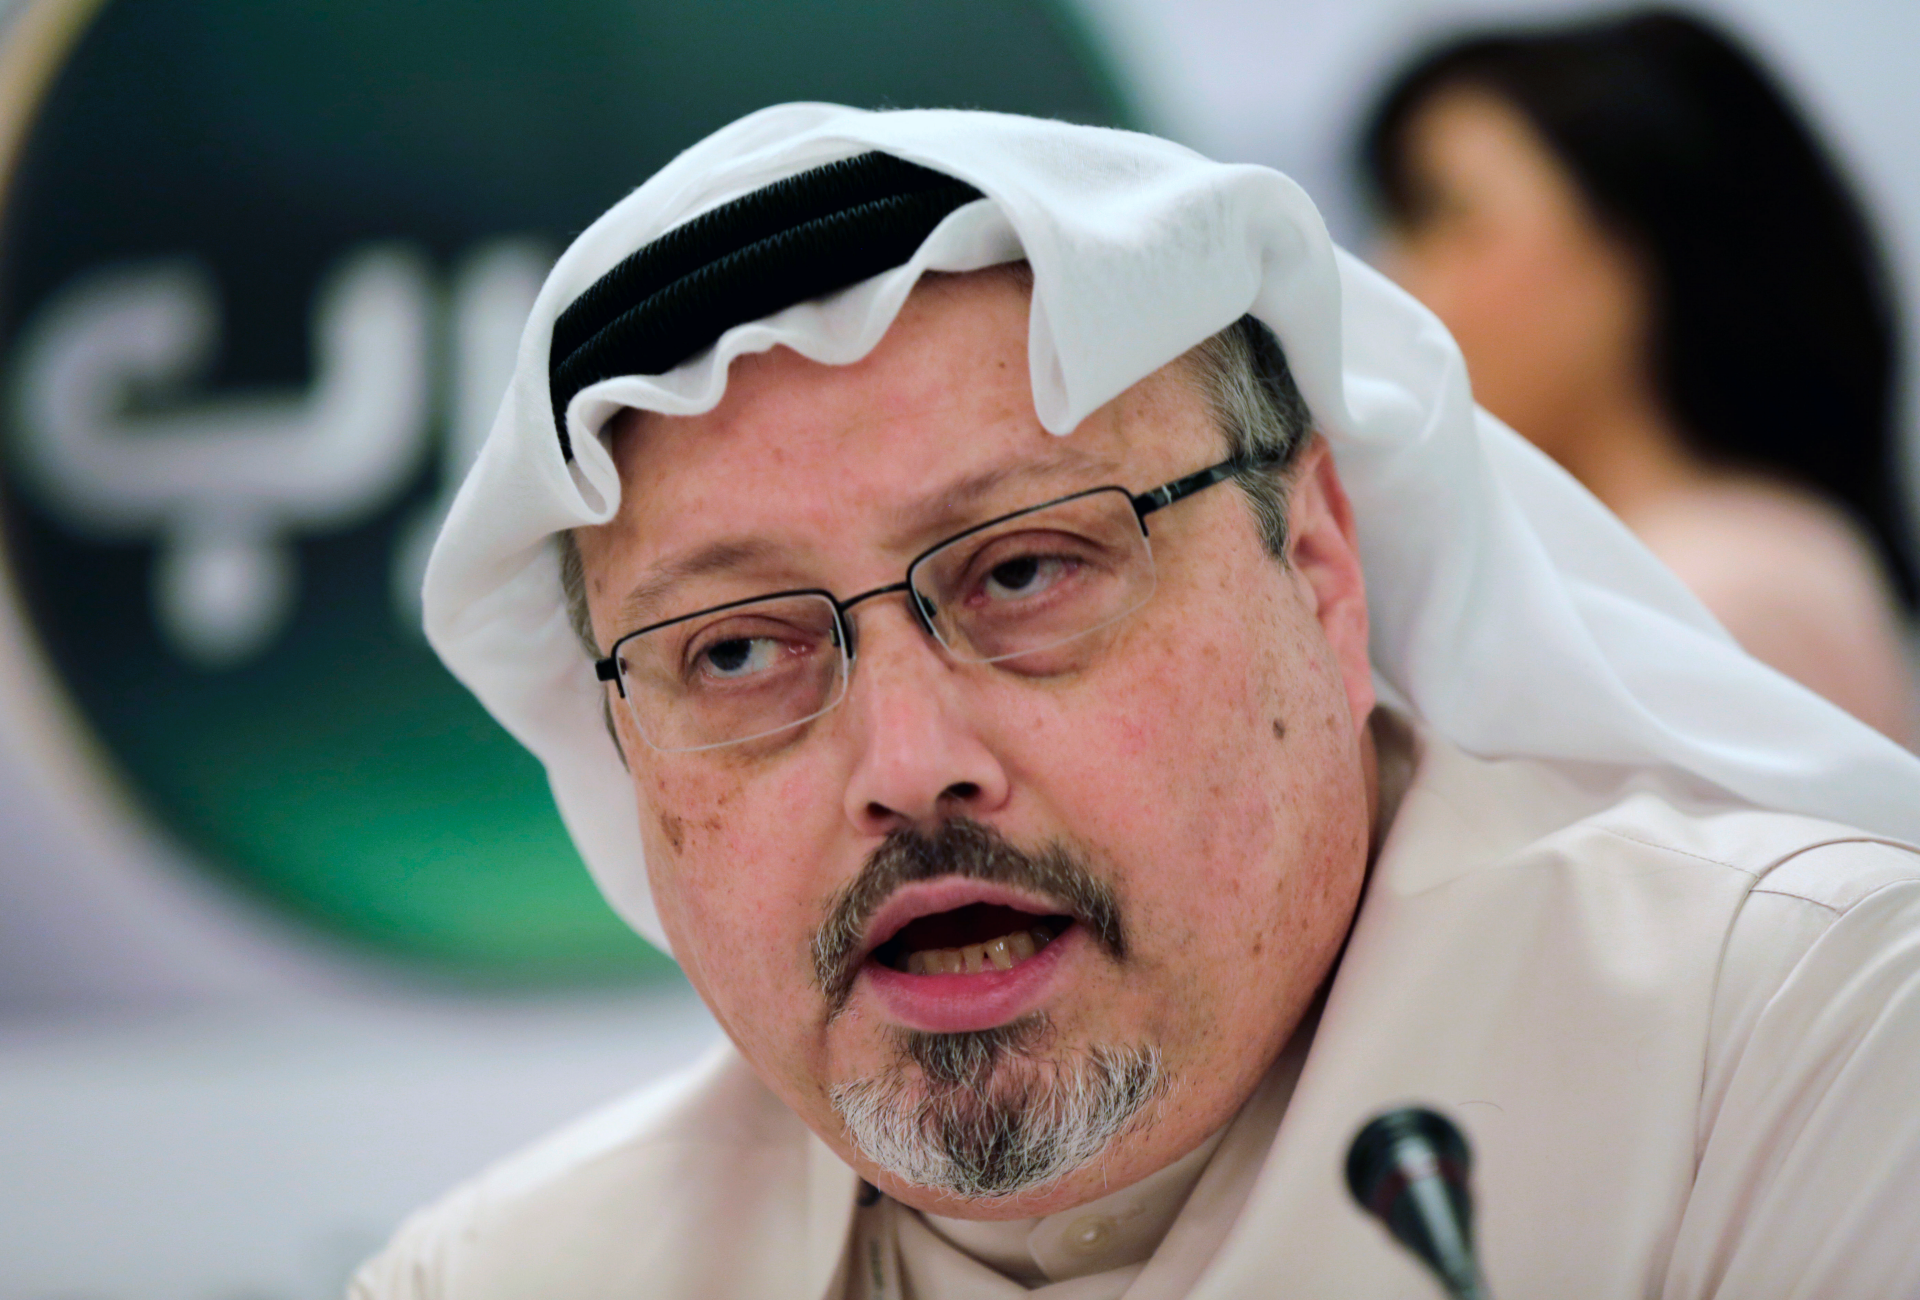 Saudis offer pathetic explanation of Khashoggi death to preserve ties to US and clear crown prince